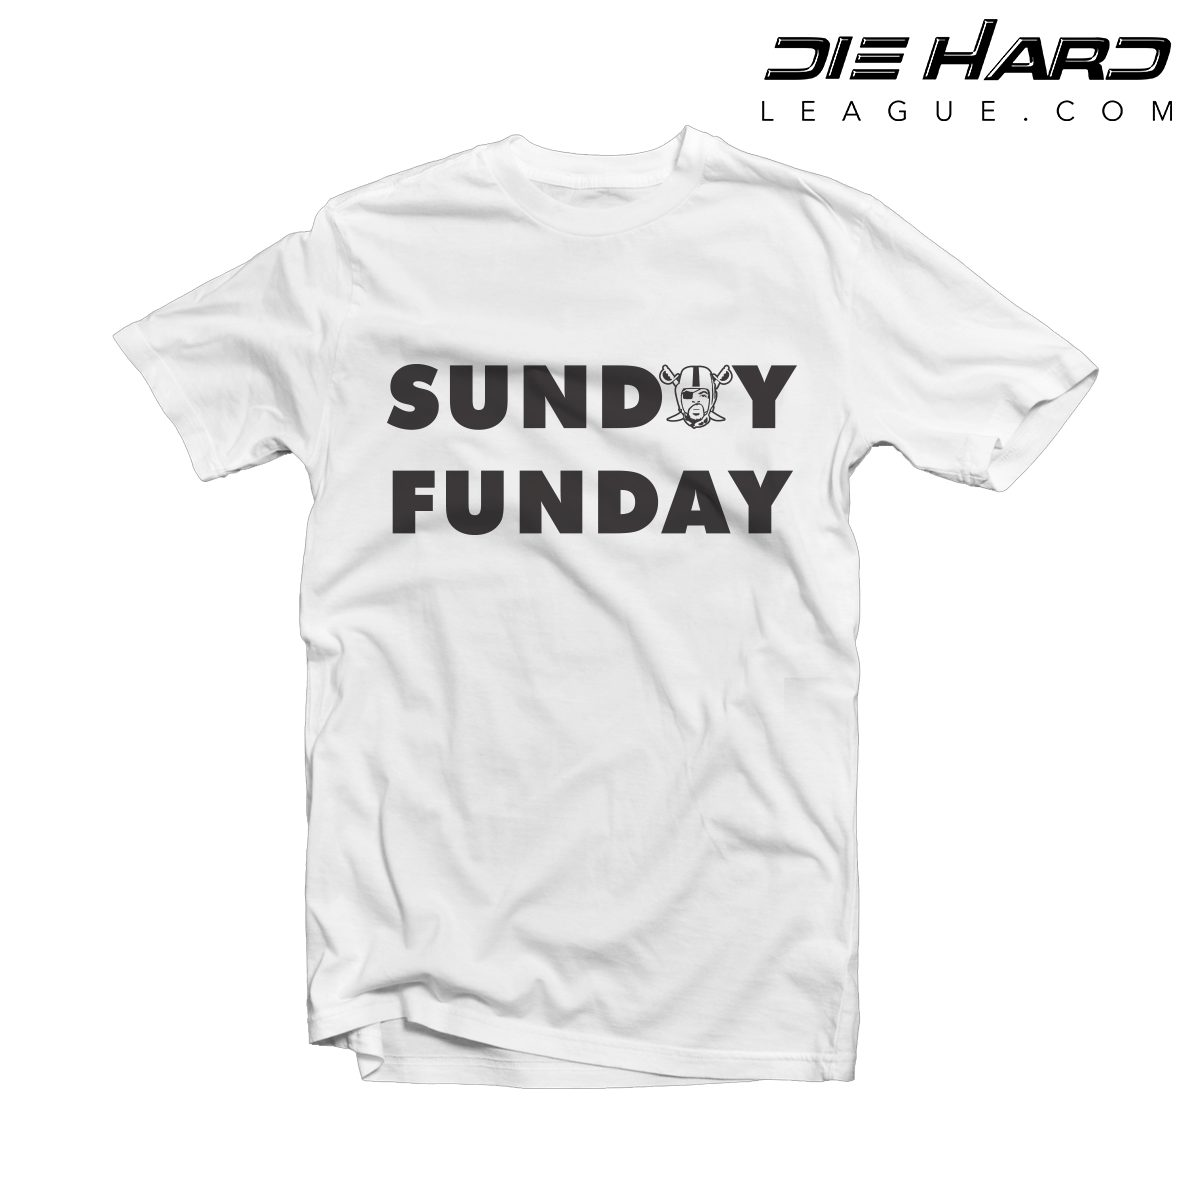 the latest a558c a2cf1 Oakland Raiders Shirt - Sunday Funday White Tee